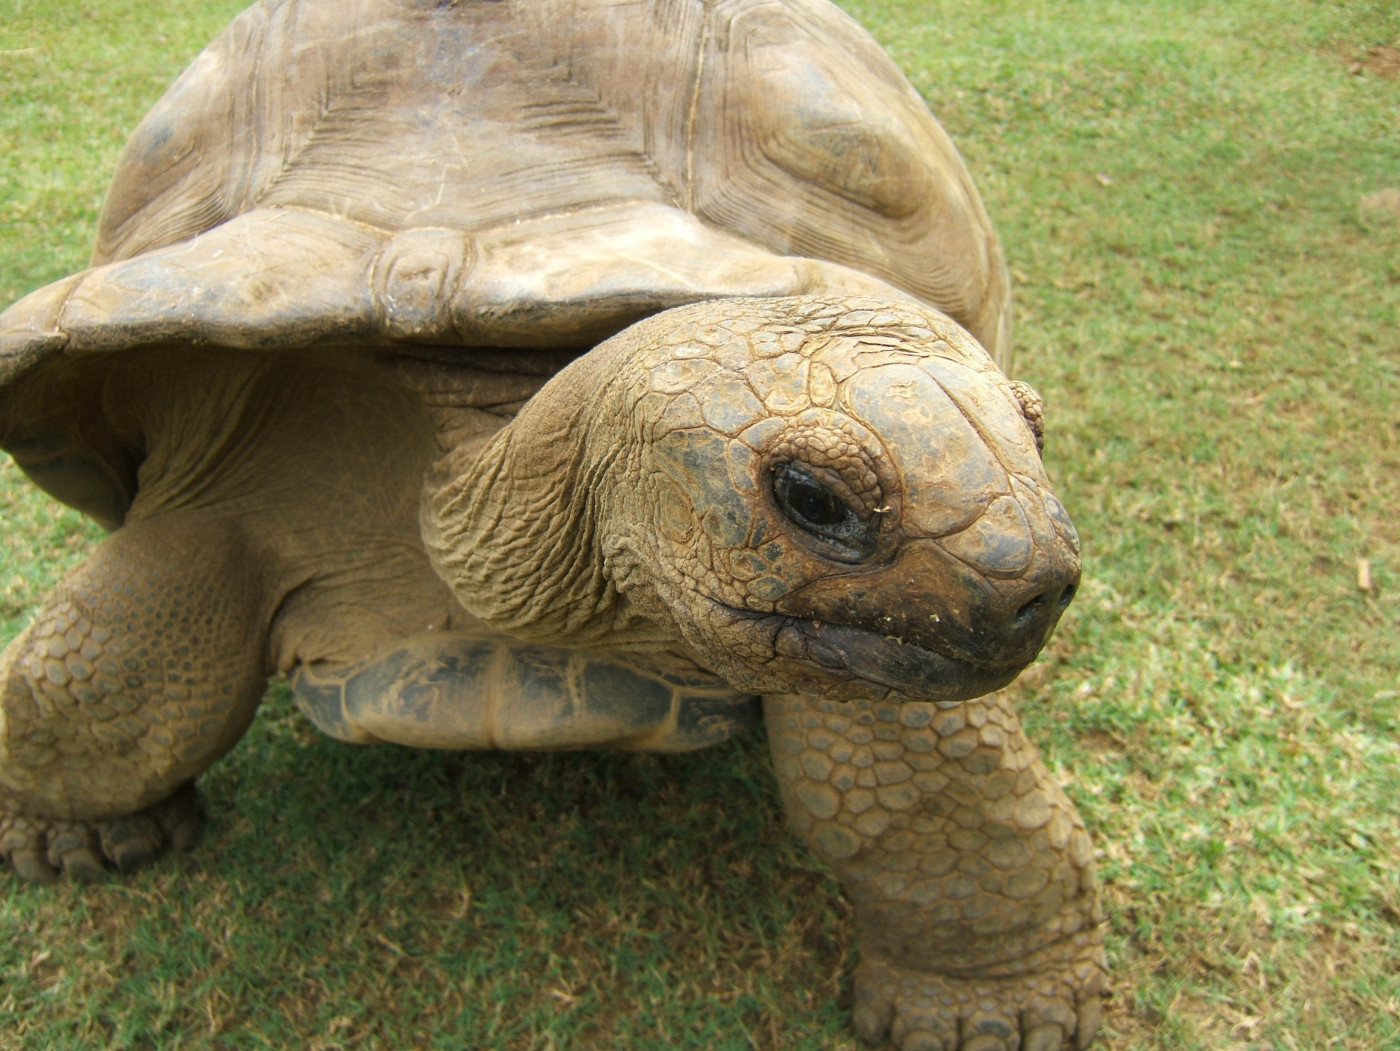 slowing down, tortoise-style